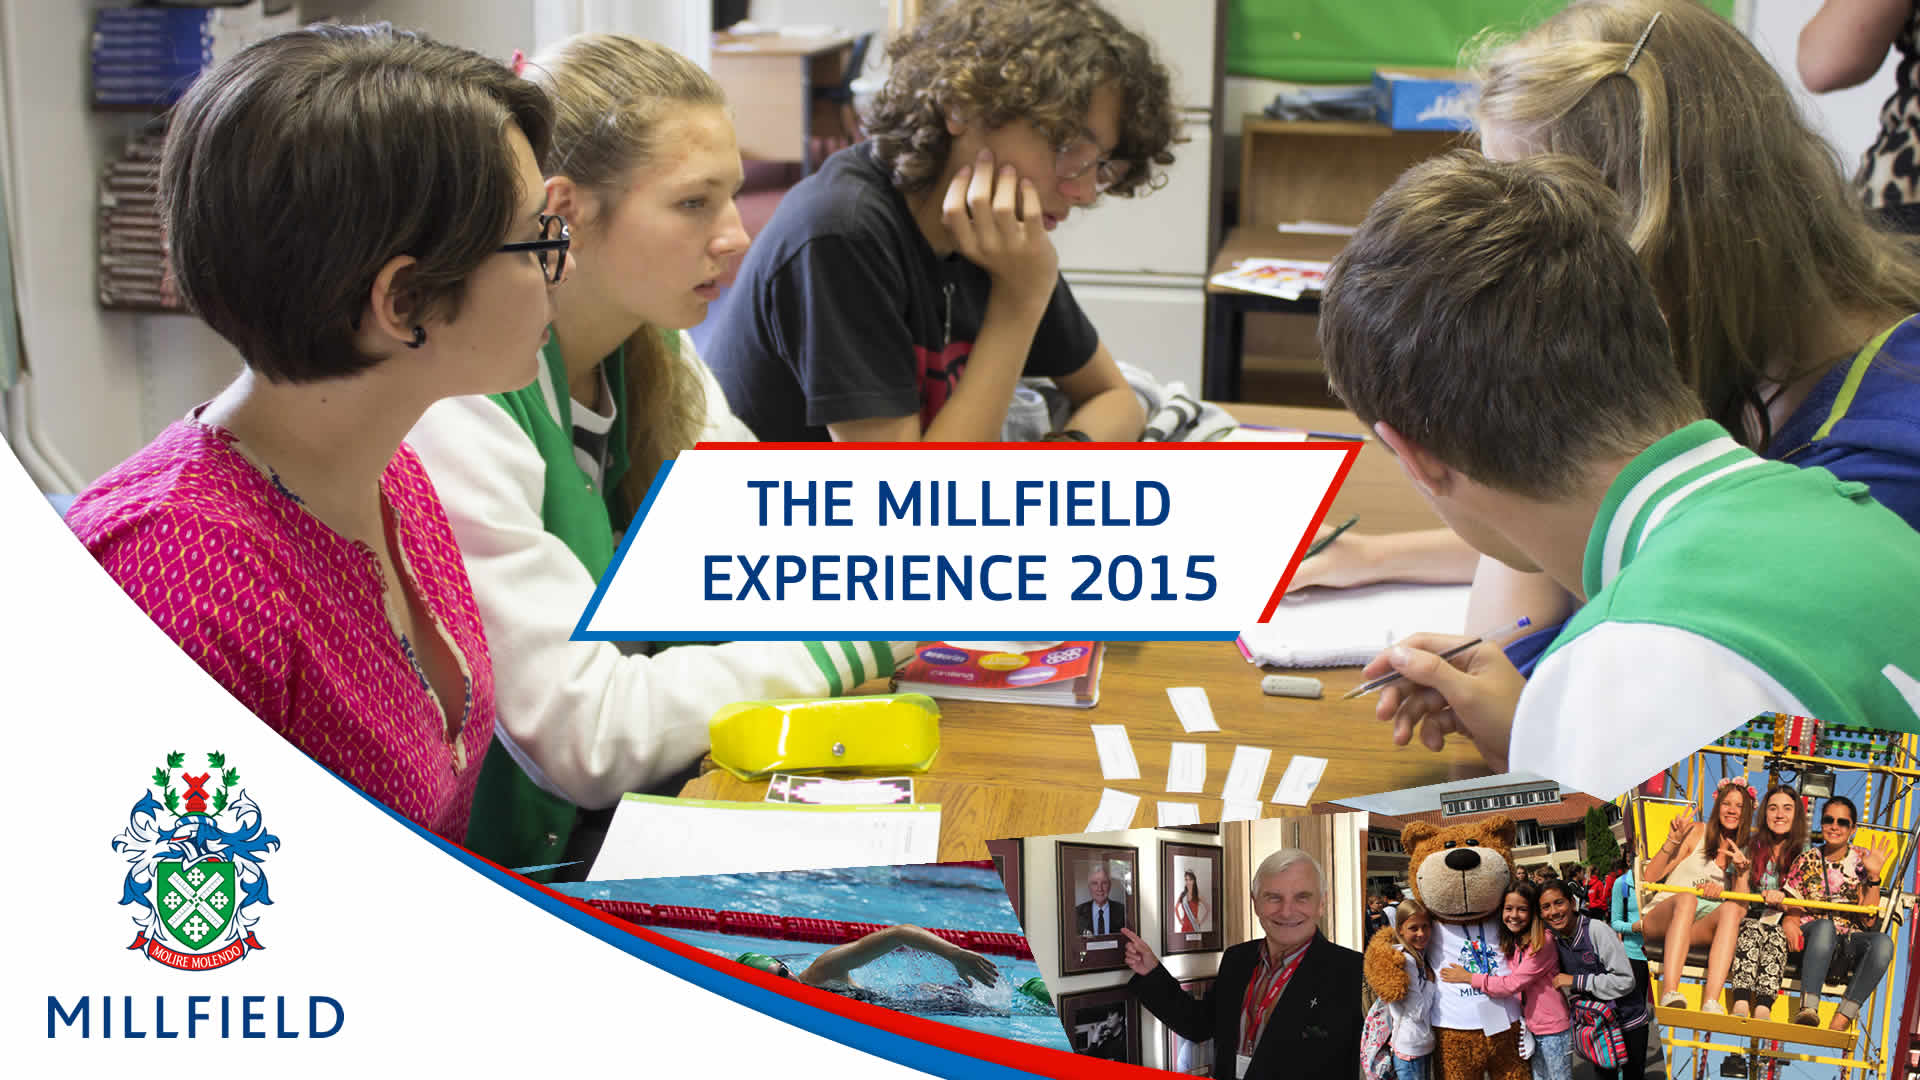 The Millfield Experience 2015